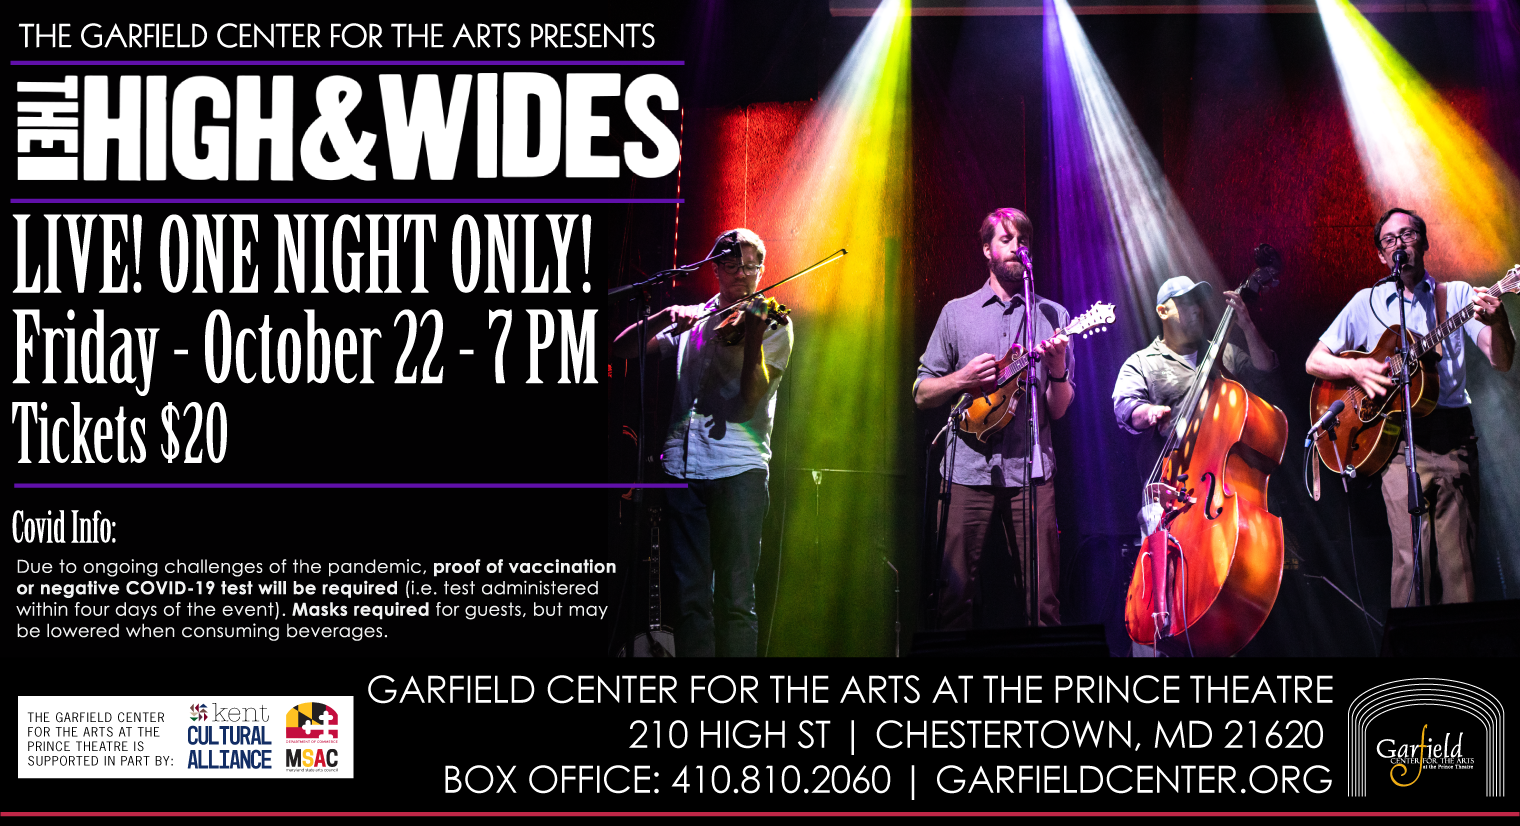 The High & Wides - LIVE at the Garfield!